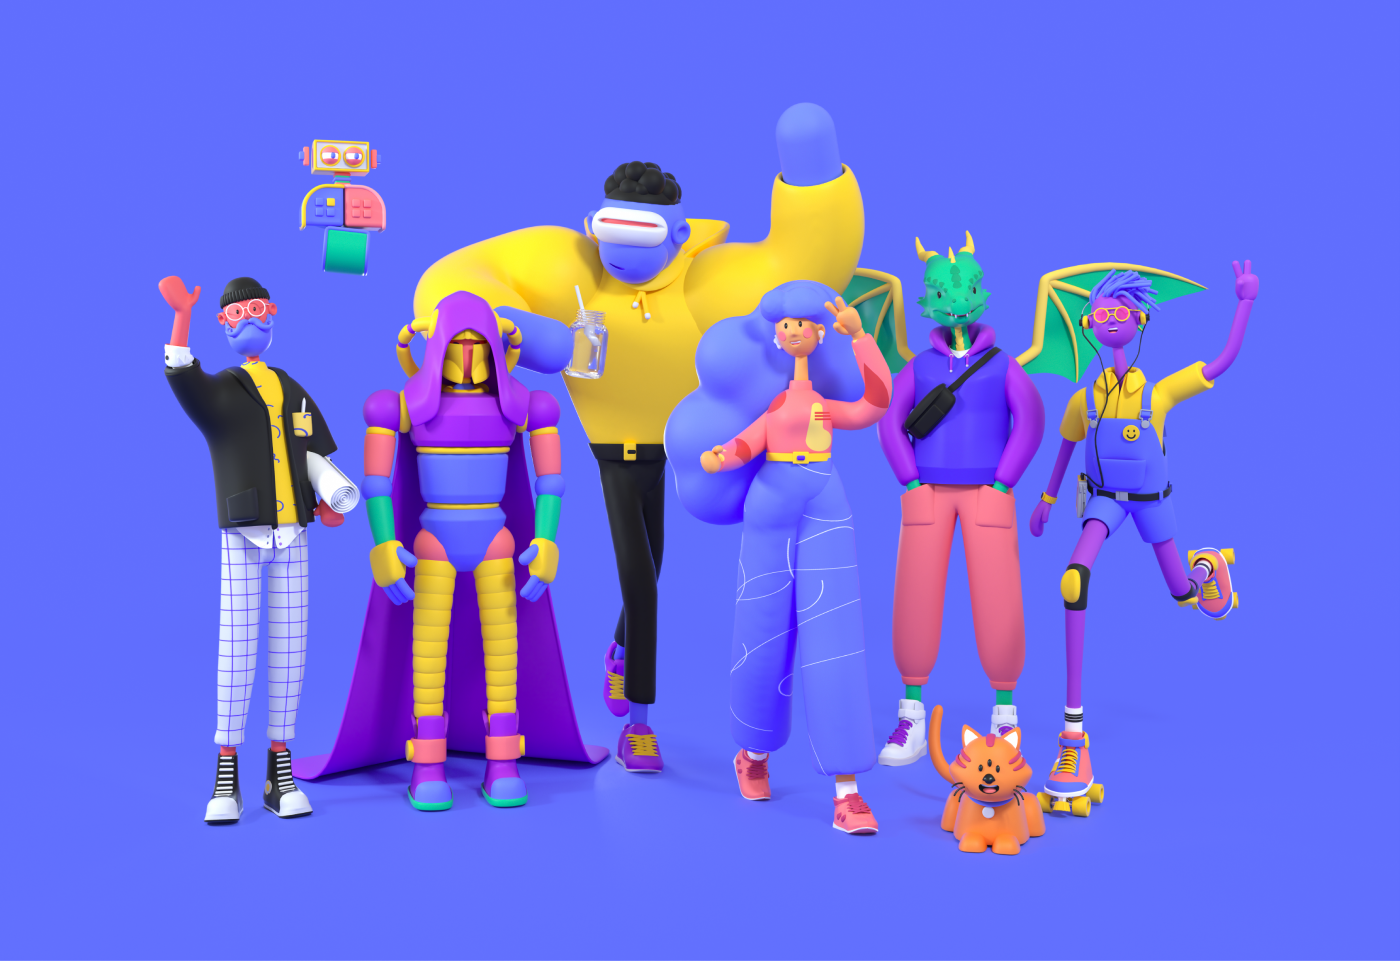 A Polywork illustration of digital characters, including whimsical dragons, robots and humans